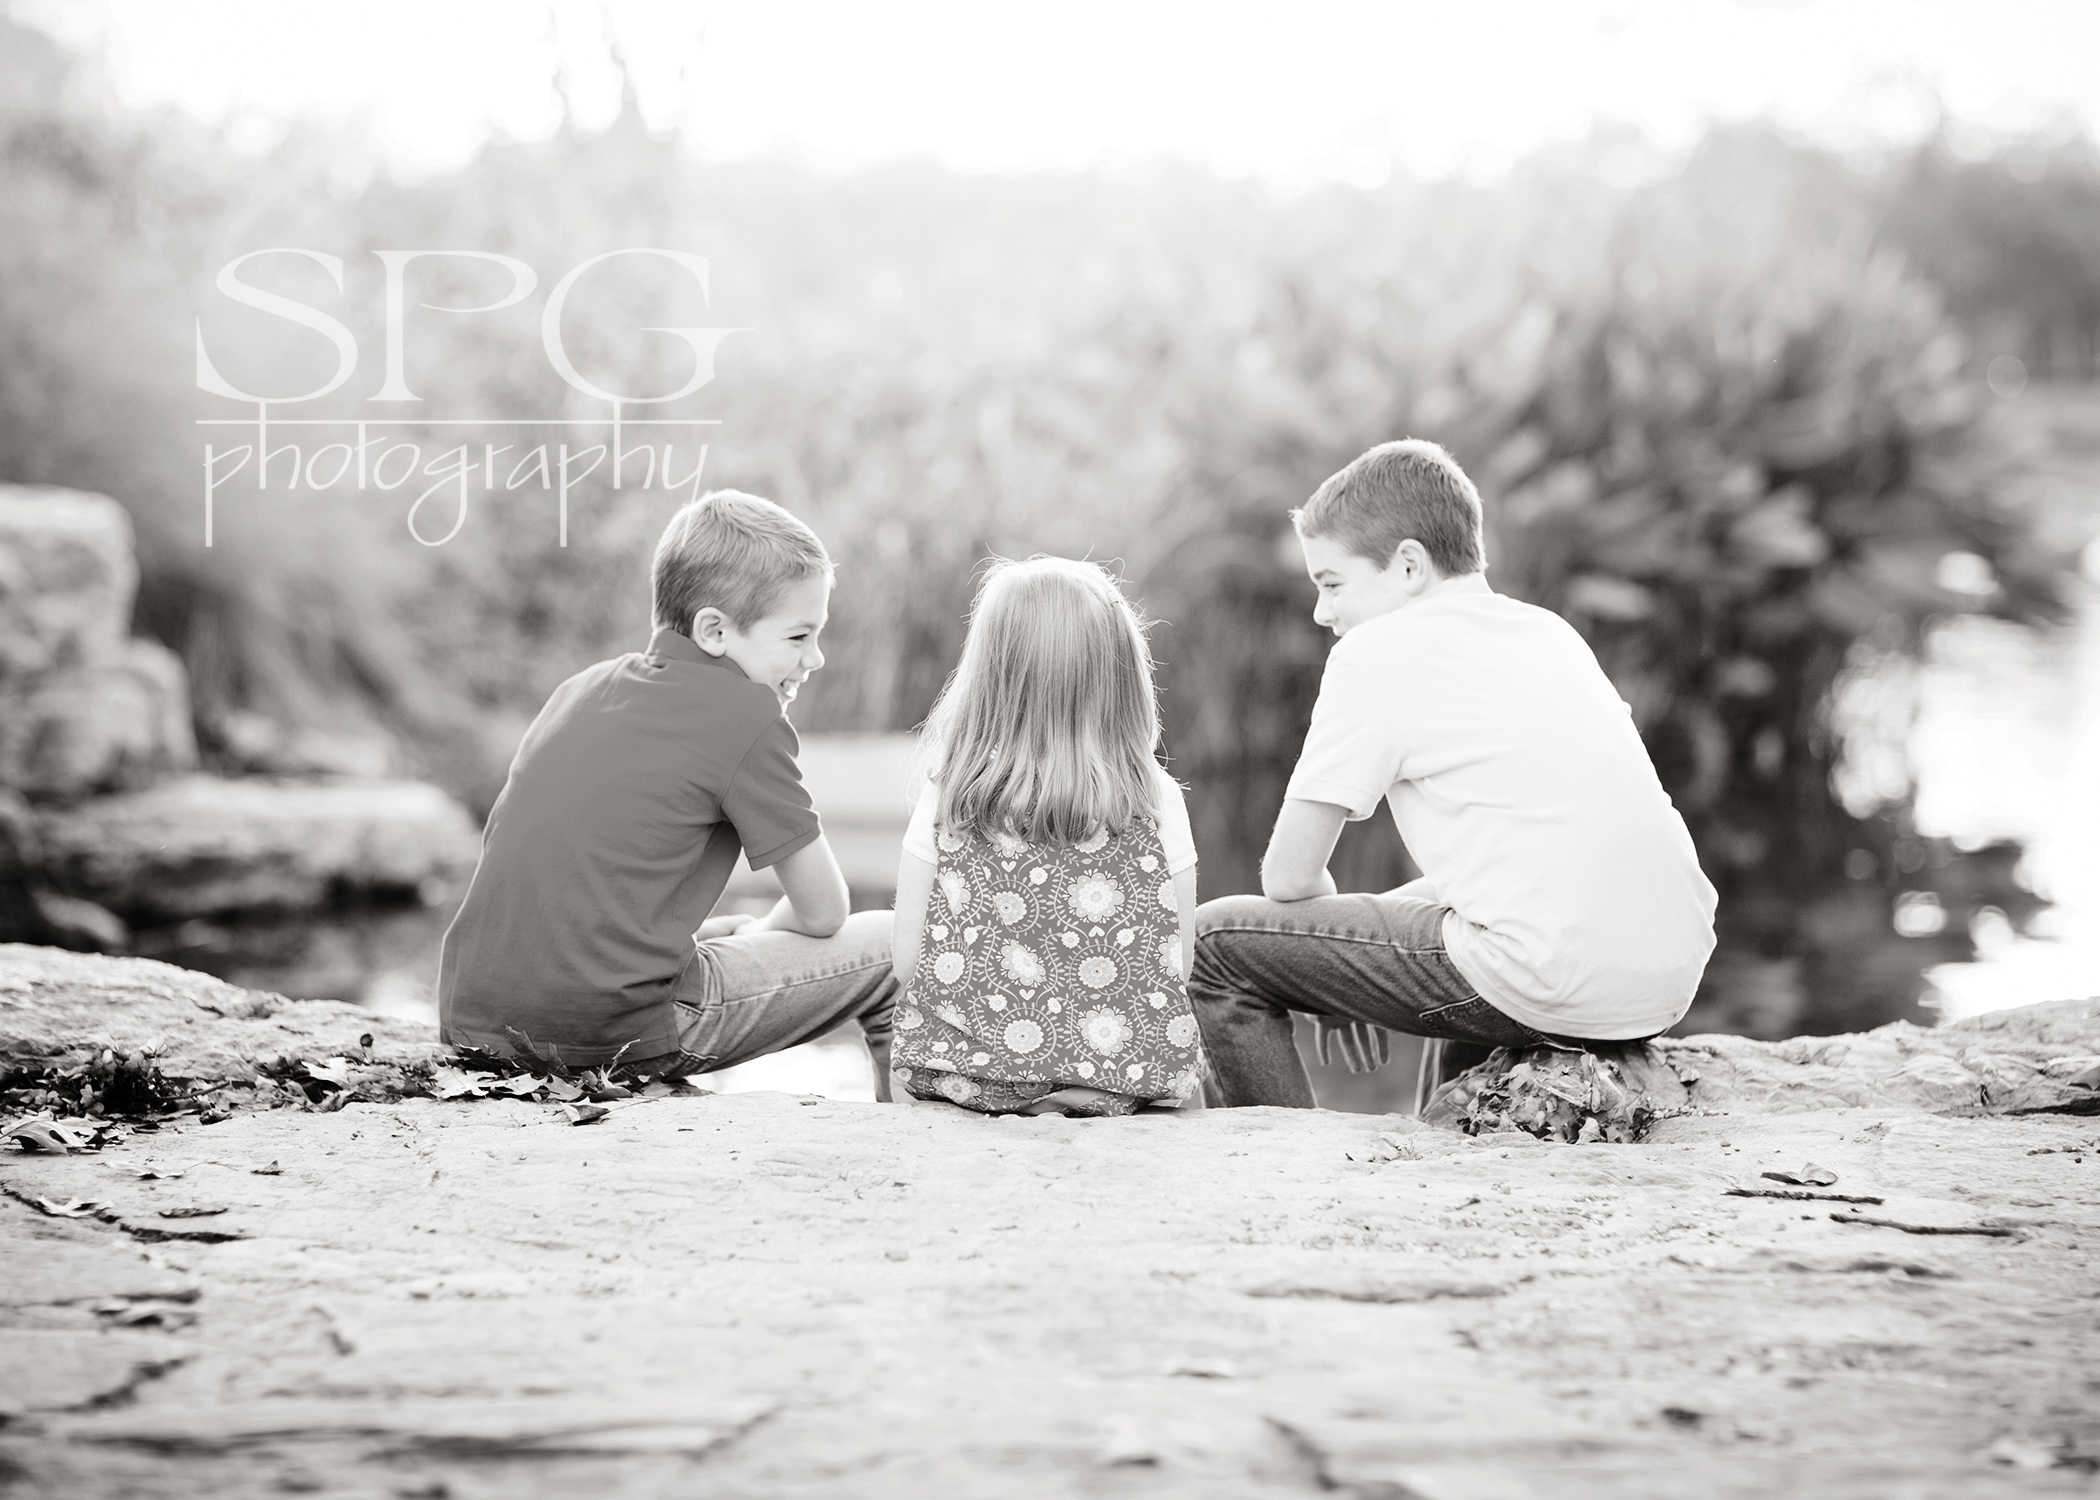 guest post by susie gaal on how to photograph families